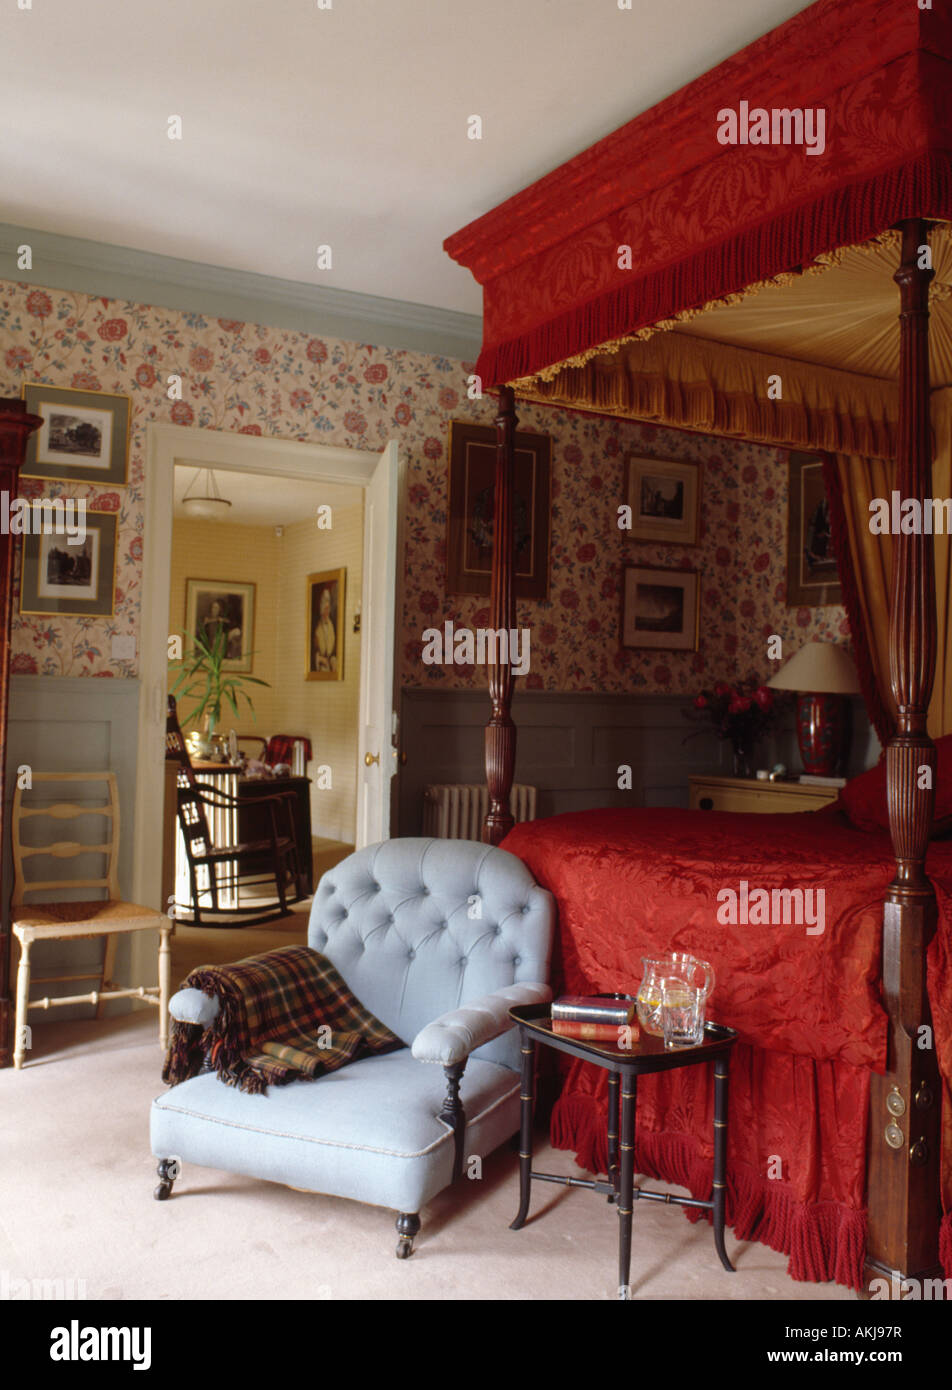 red silk canopy and cover on antique four poster bed in country bedroom with pastel blue armchair and floral wallpaper